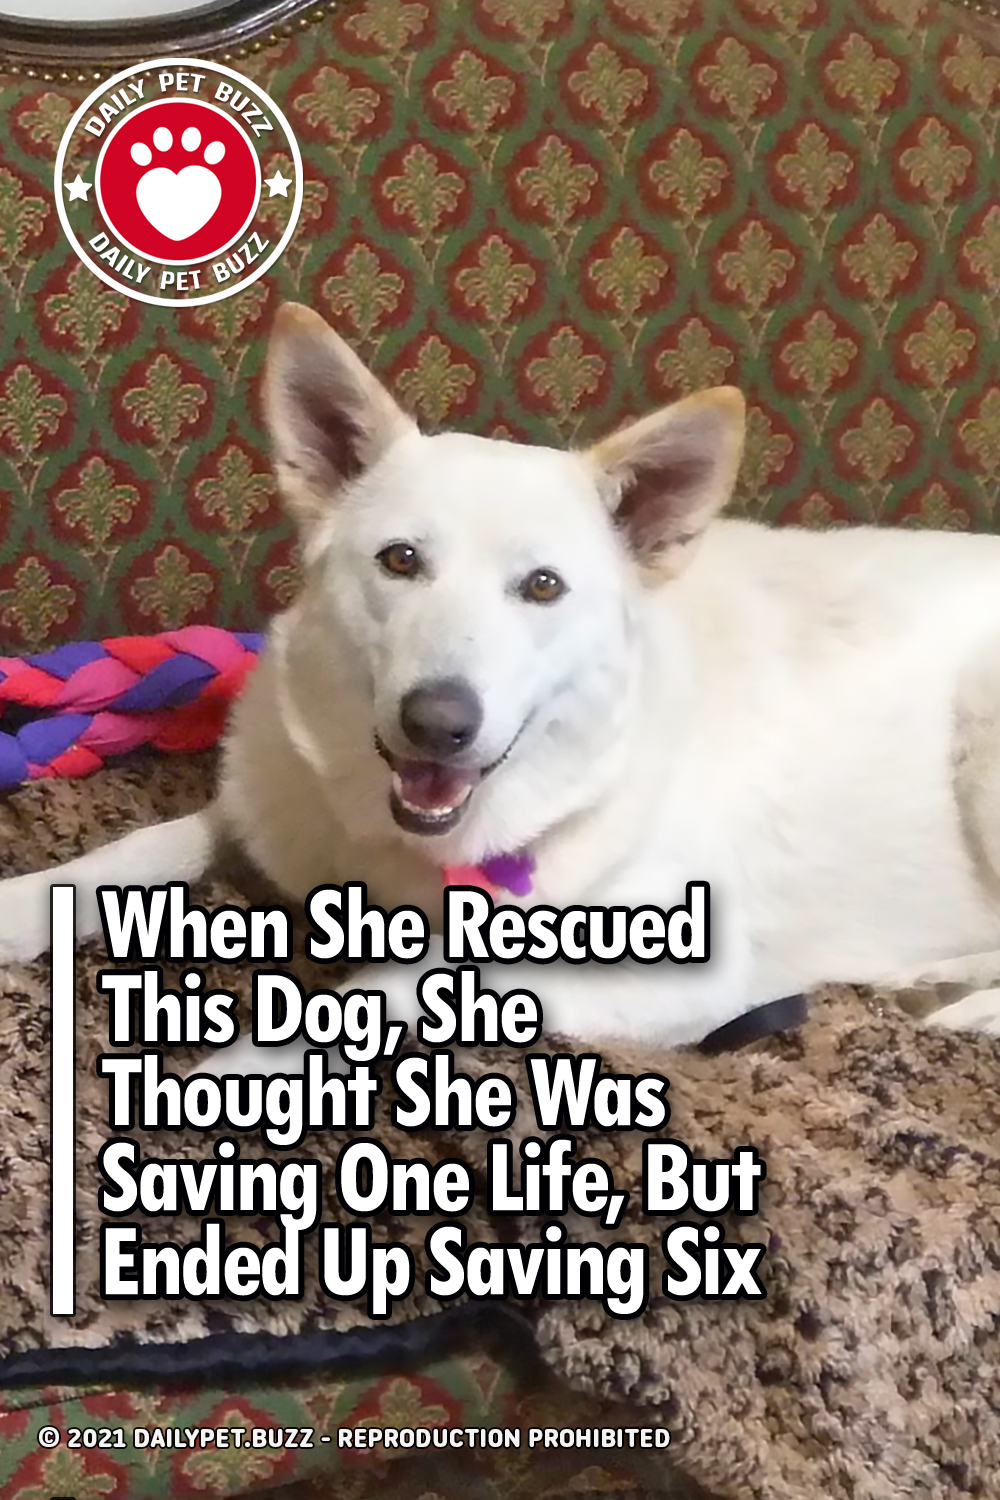 When She Rescued This Dog, She Thought She Was Saving One Life, But Ended Up Saving Six